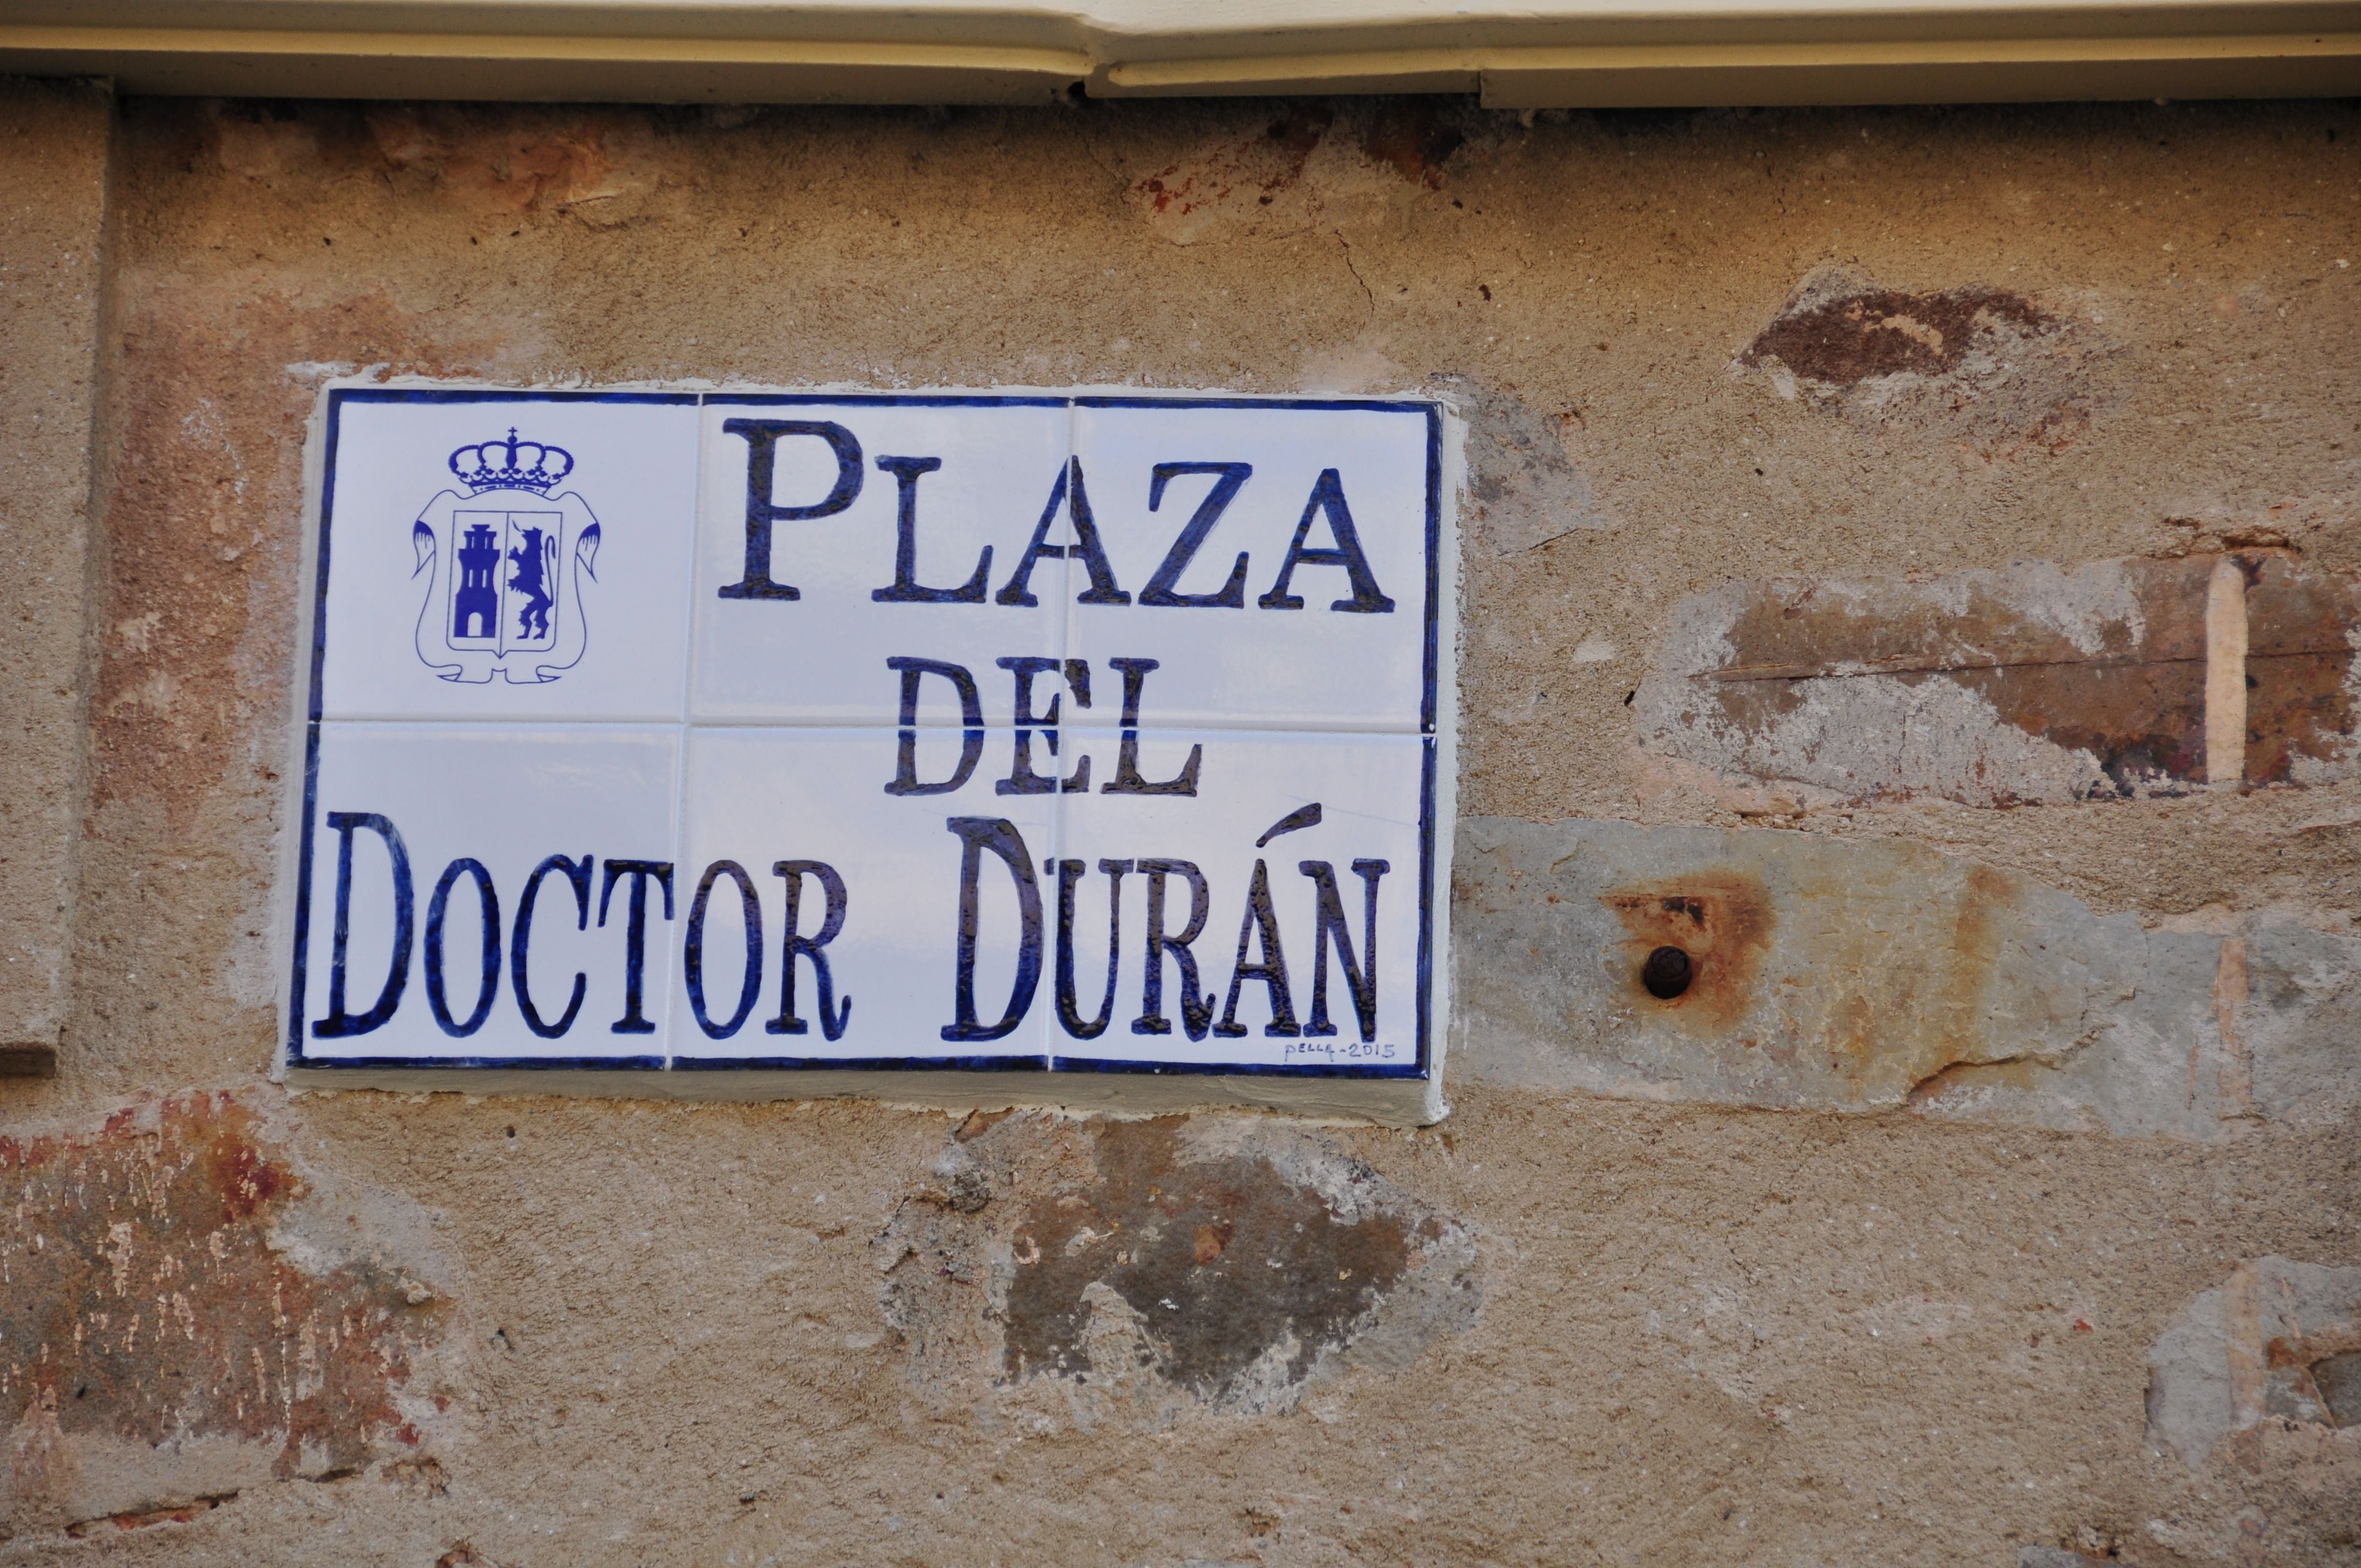 Signage in Plaza del Doctor Durán